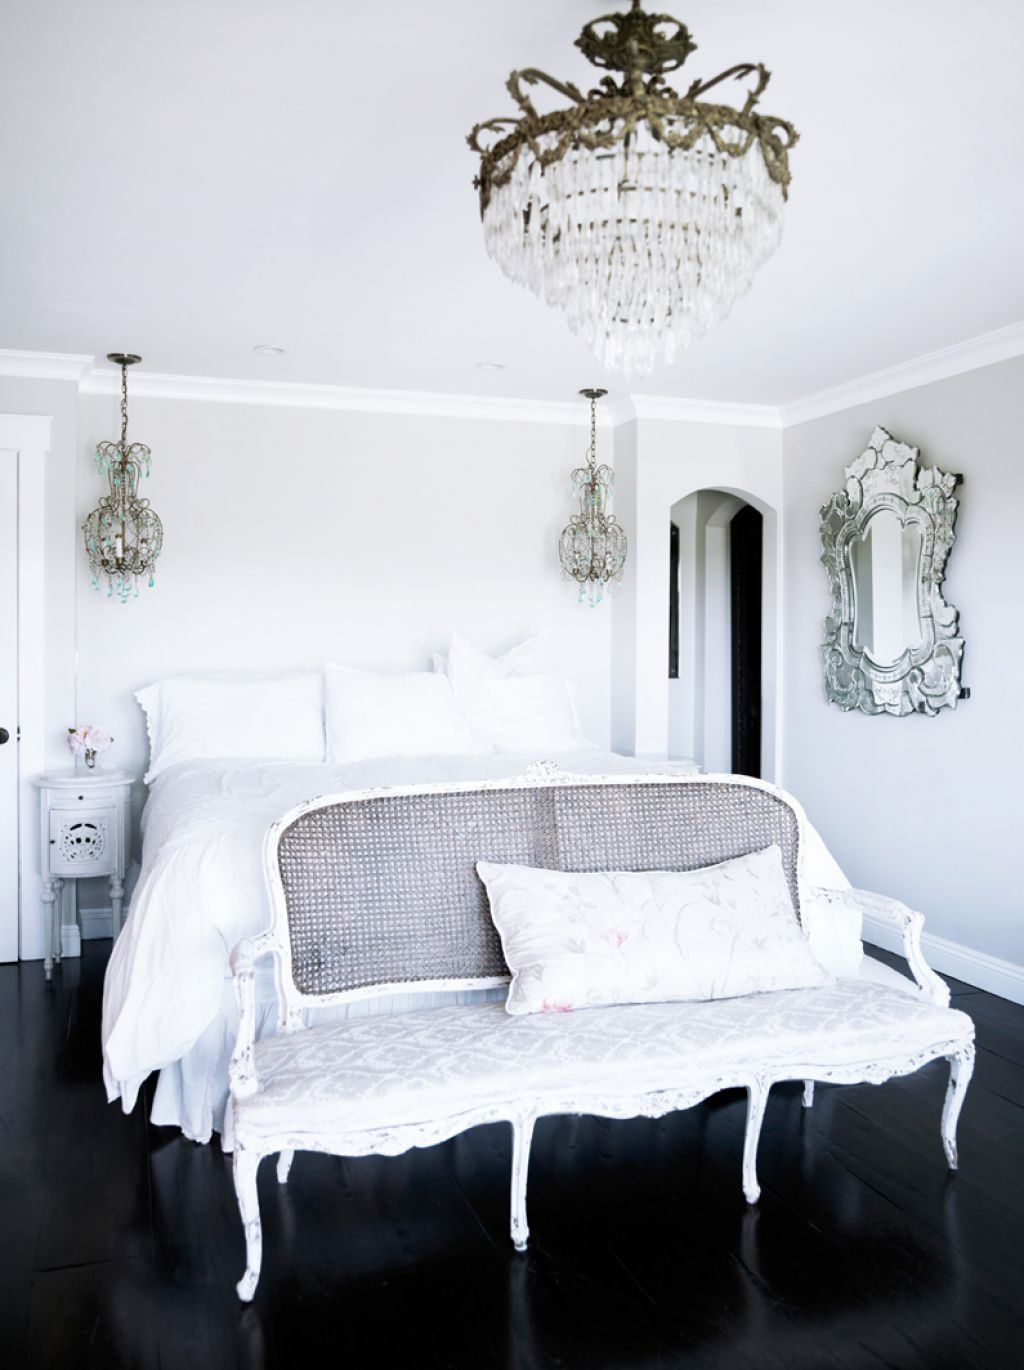 bedroom-with-crystal-chandeliers-and-venetian-mirror